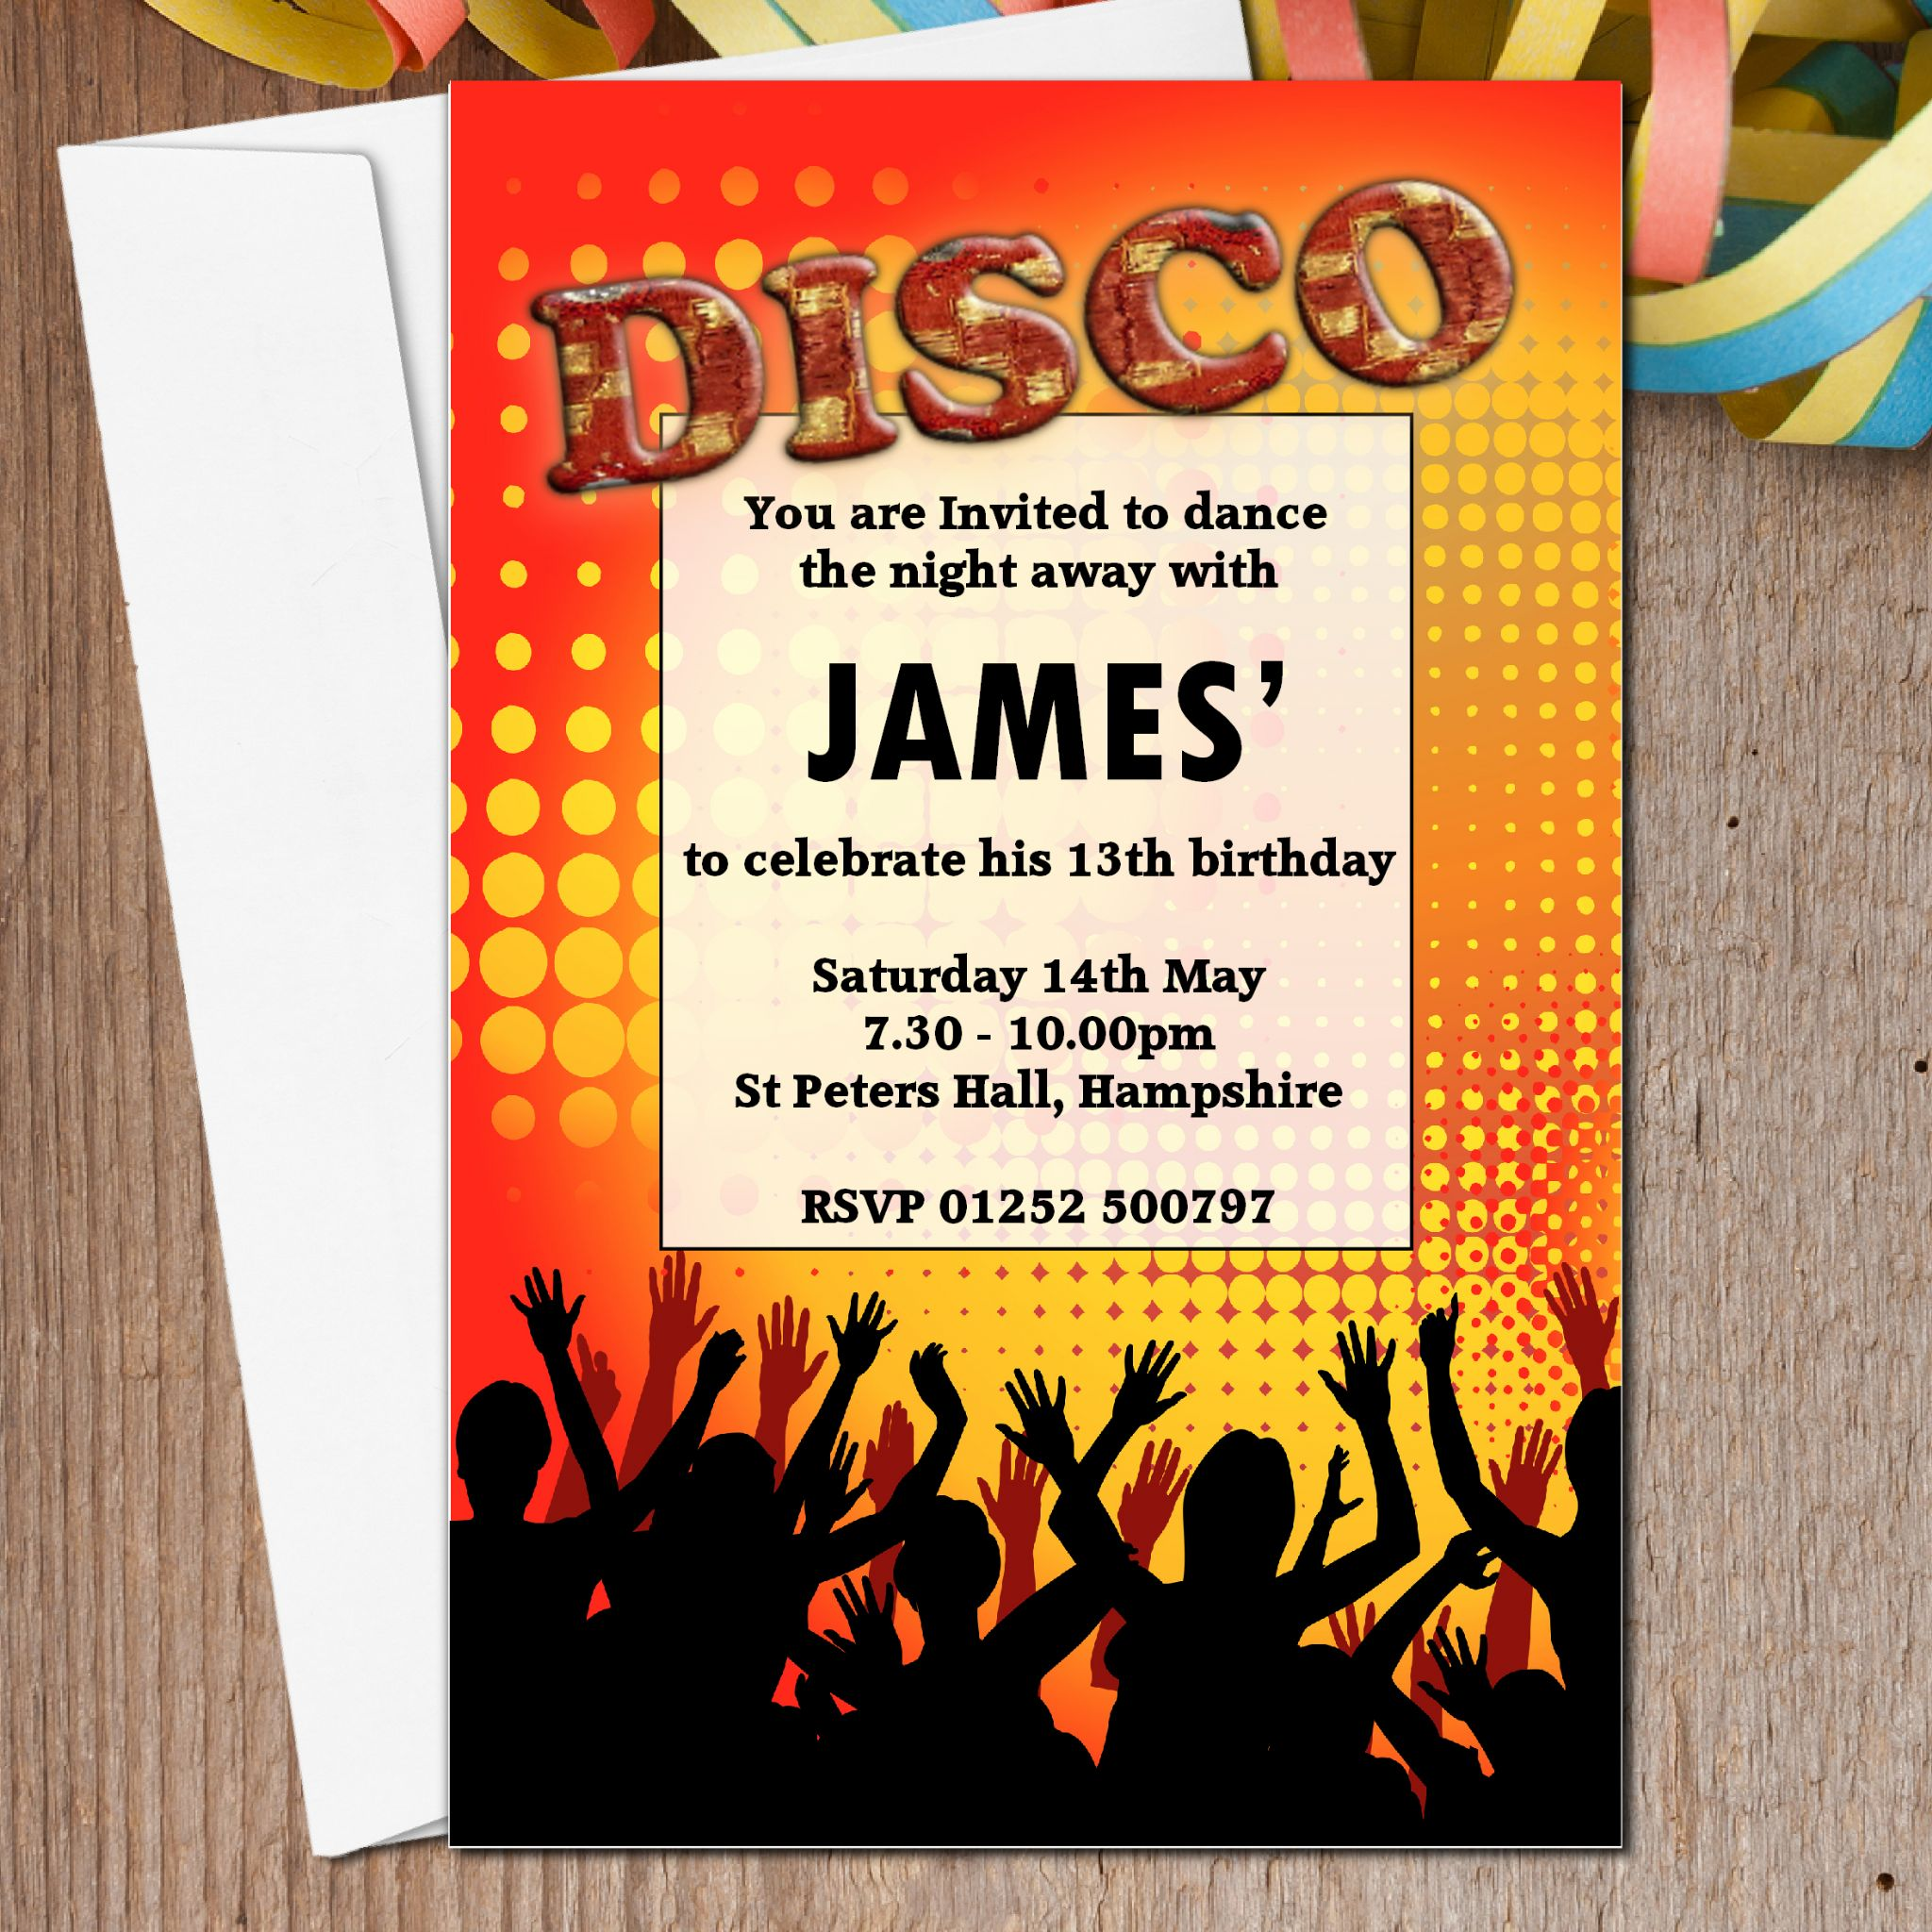 10 Personalised DISCO Club Birthday Party Invitations N3 The – Cheap Personalised Party Invitations